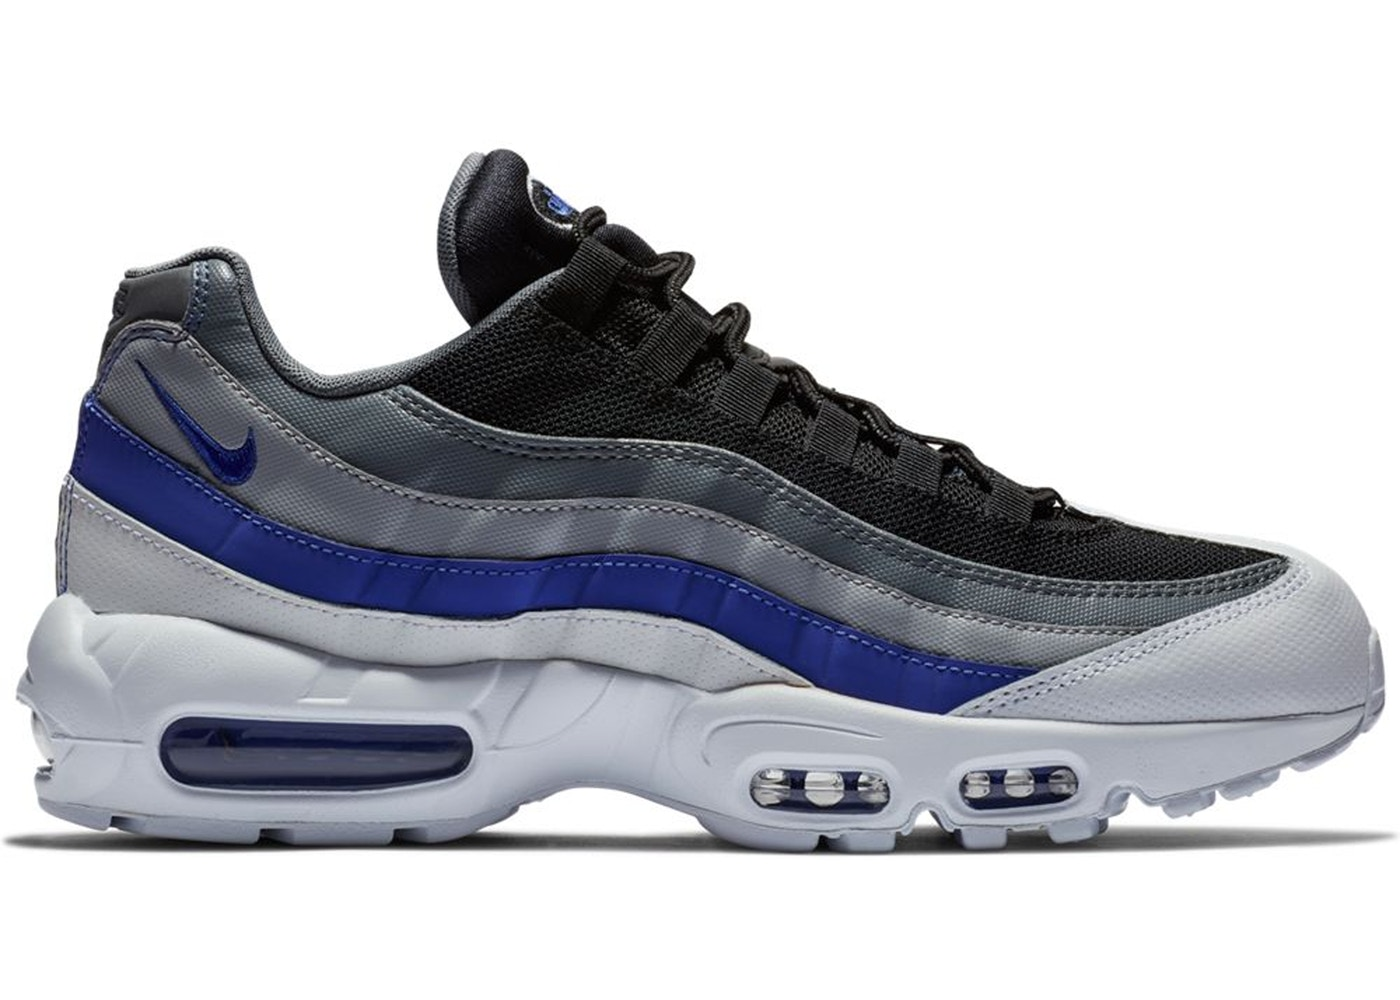 c14db4df8e Air Max 95 Wolf Grey Persian Violet - 749766-110